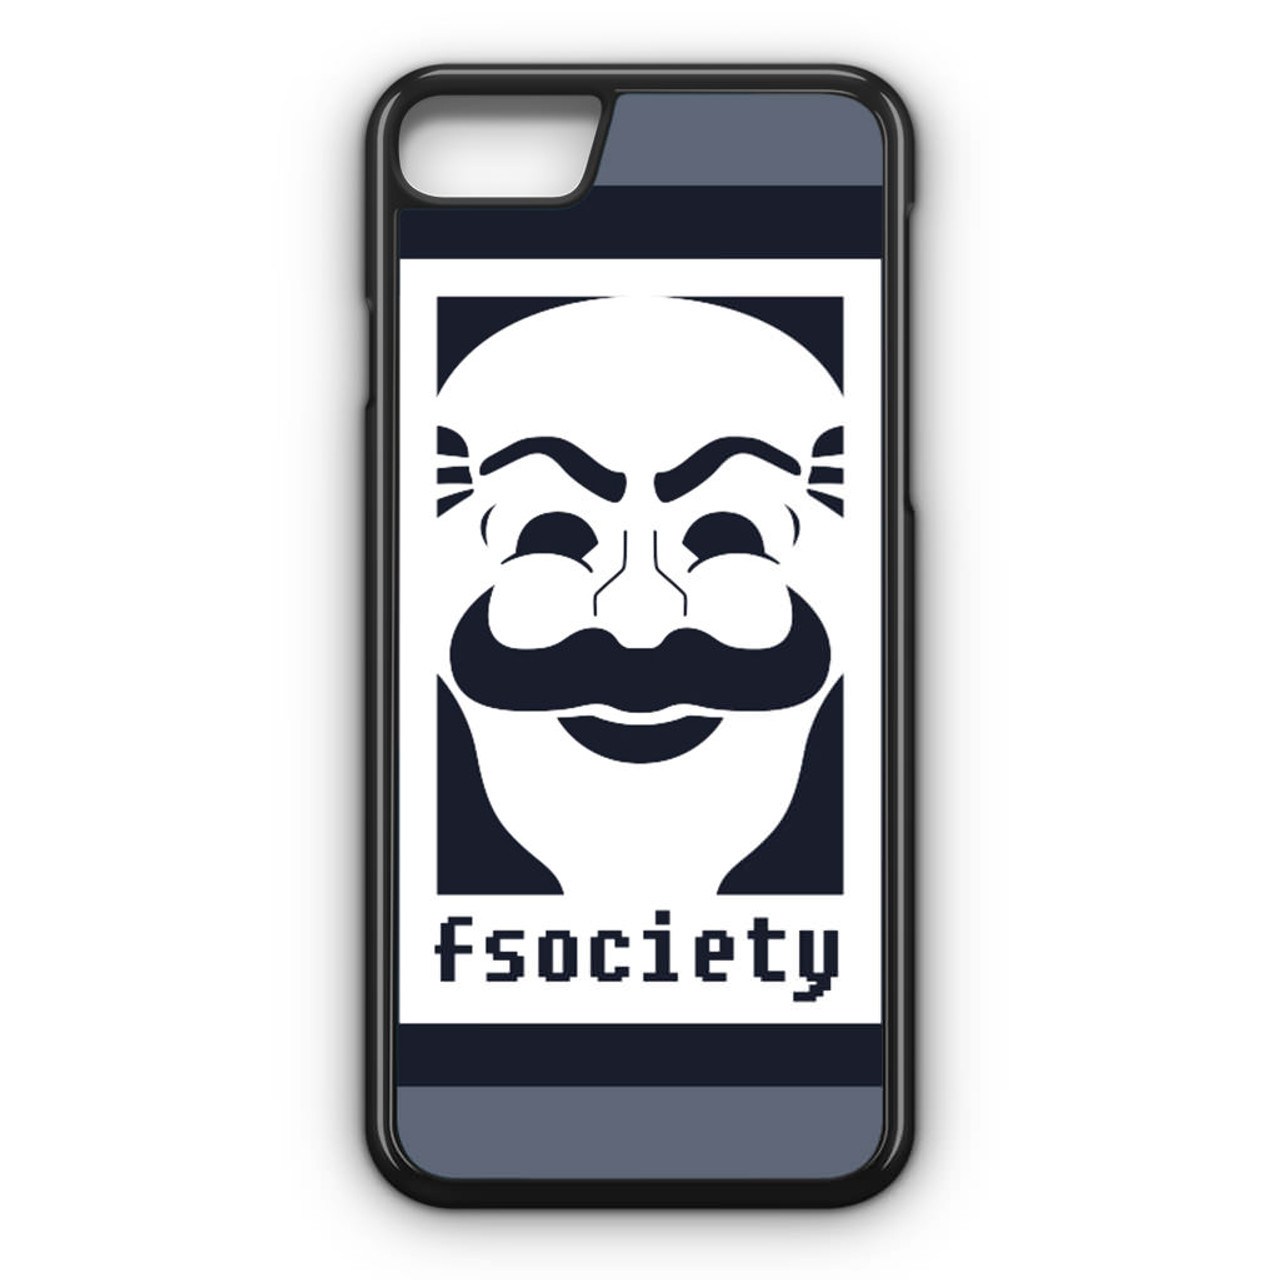 fsociety iphone 7